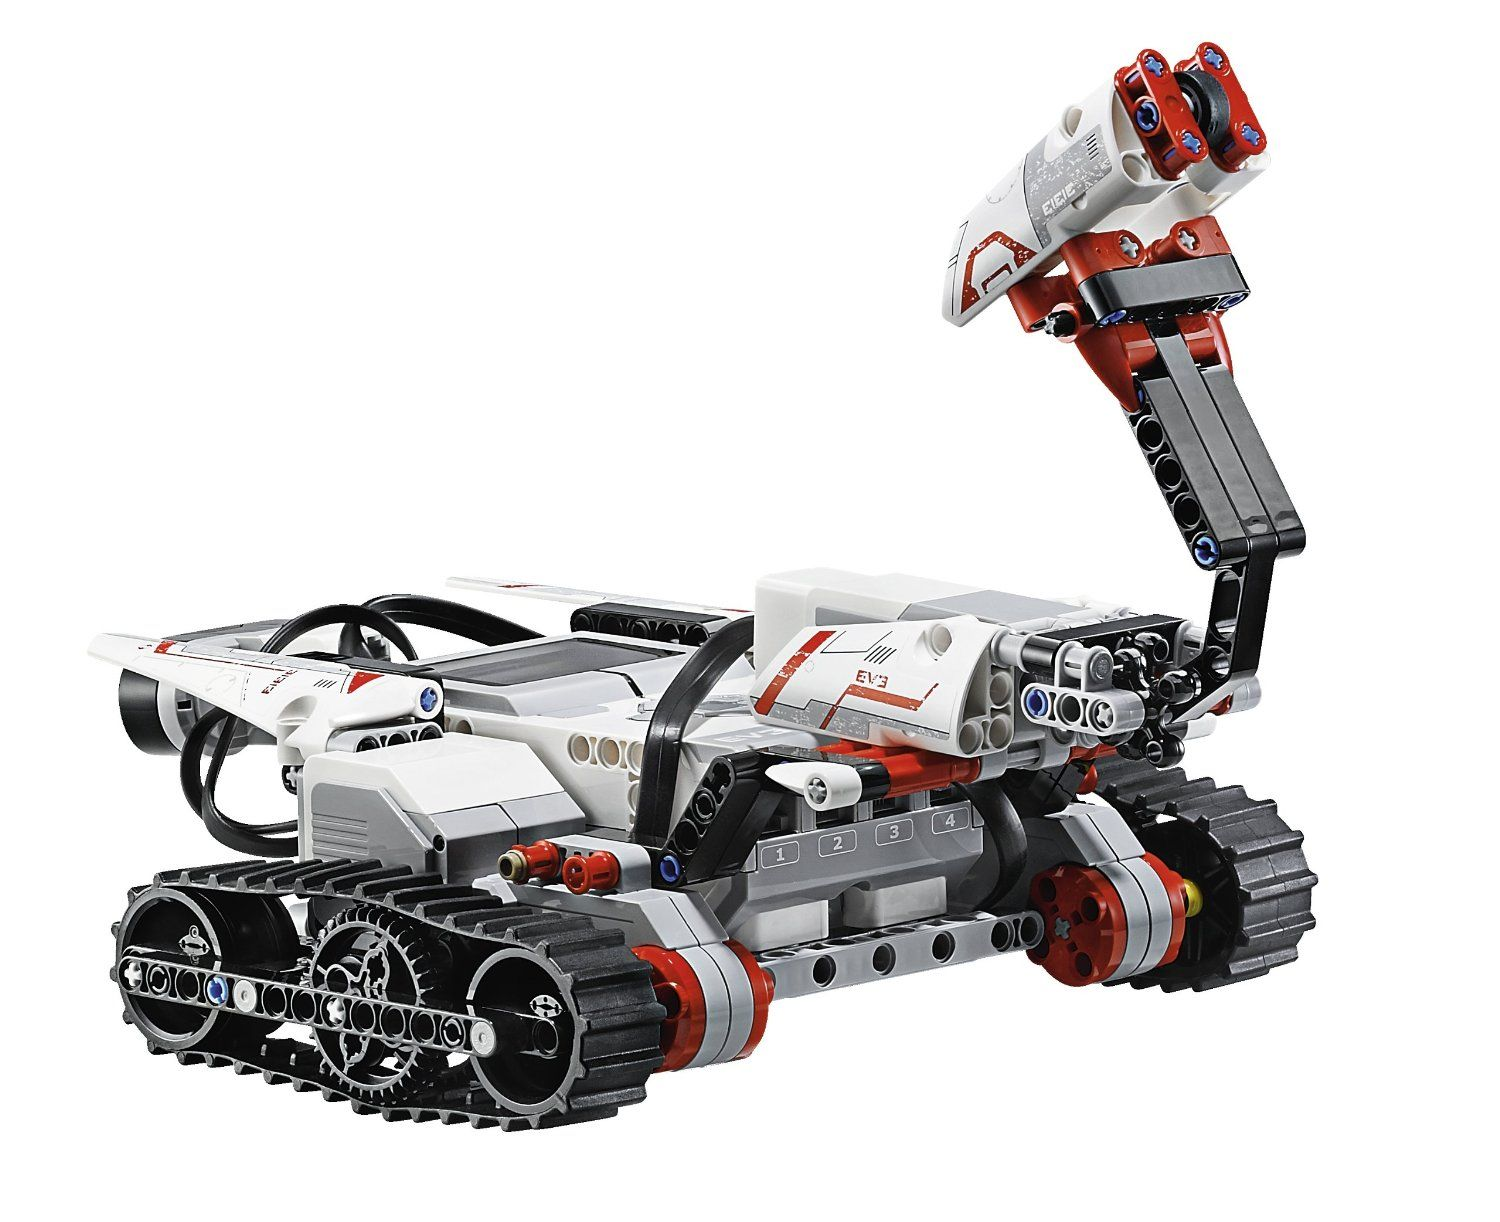 Lego Mindstorms EV3: The newest generation of the classic